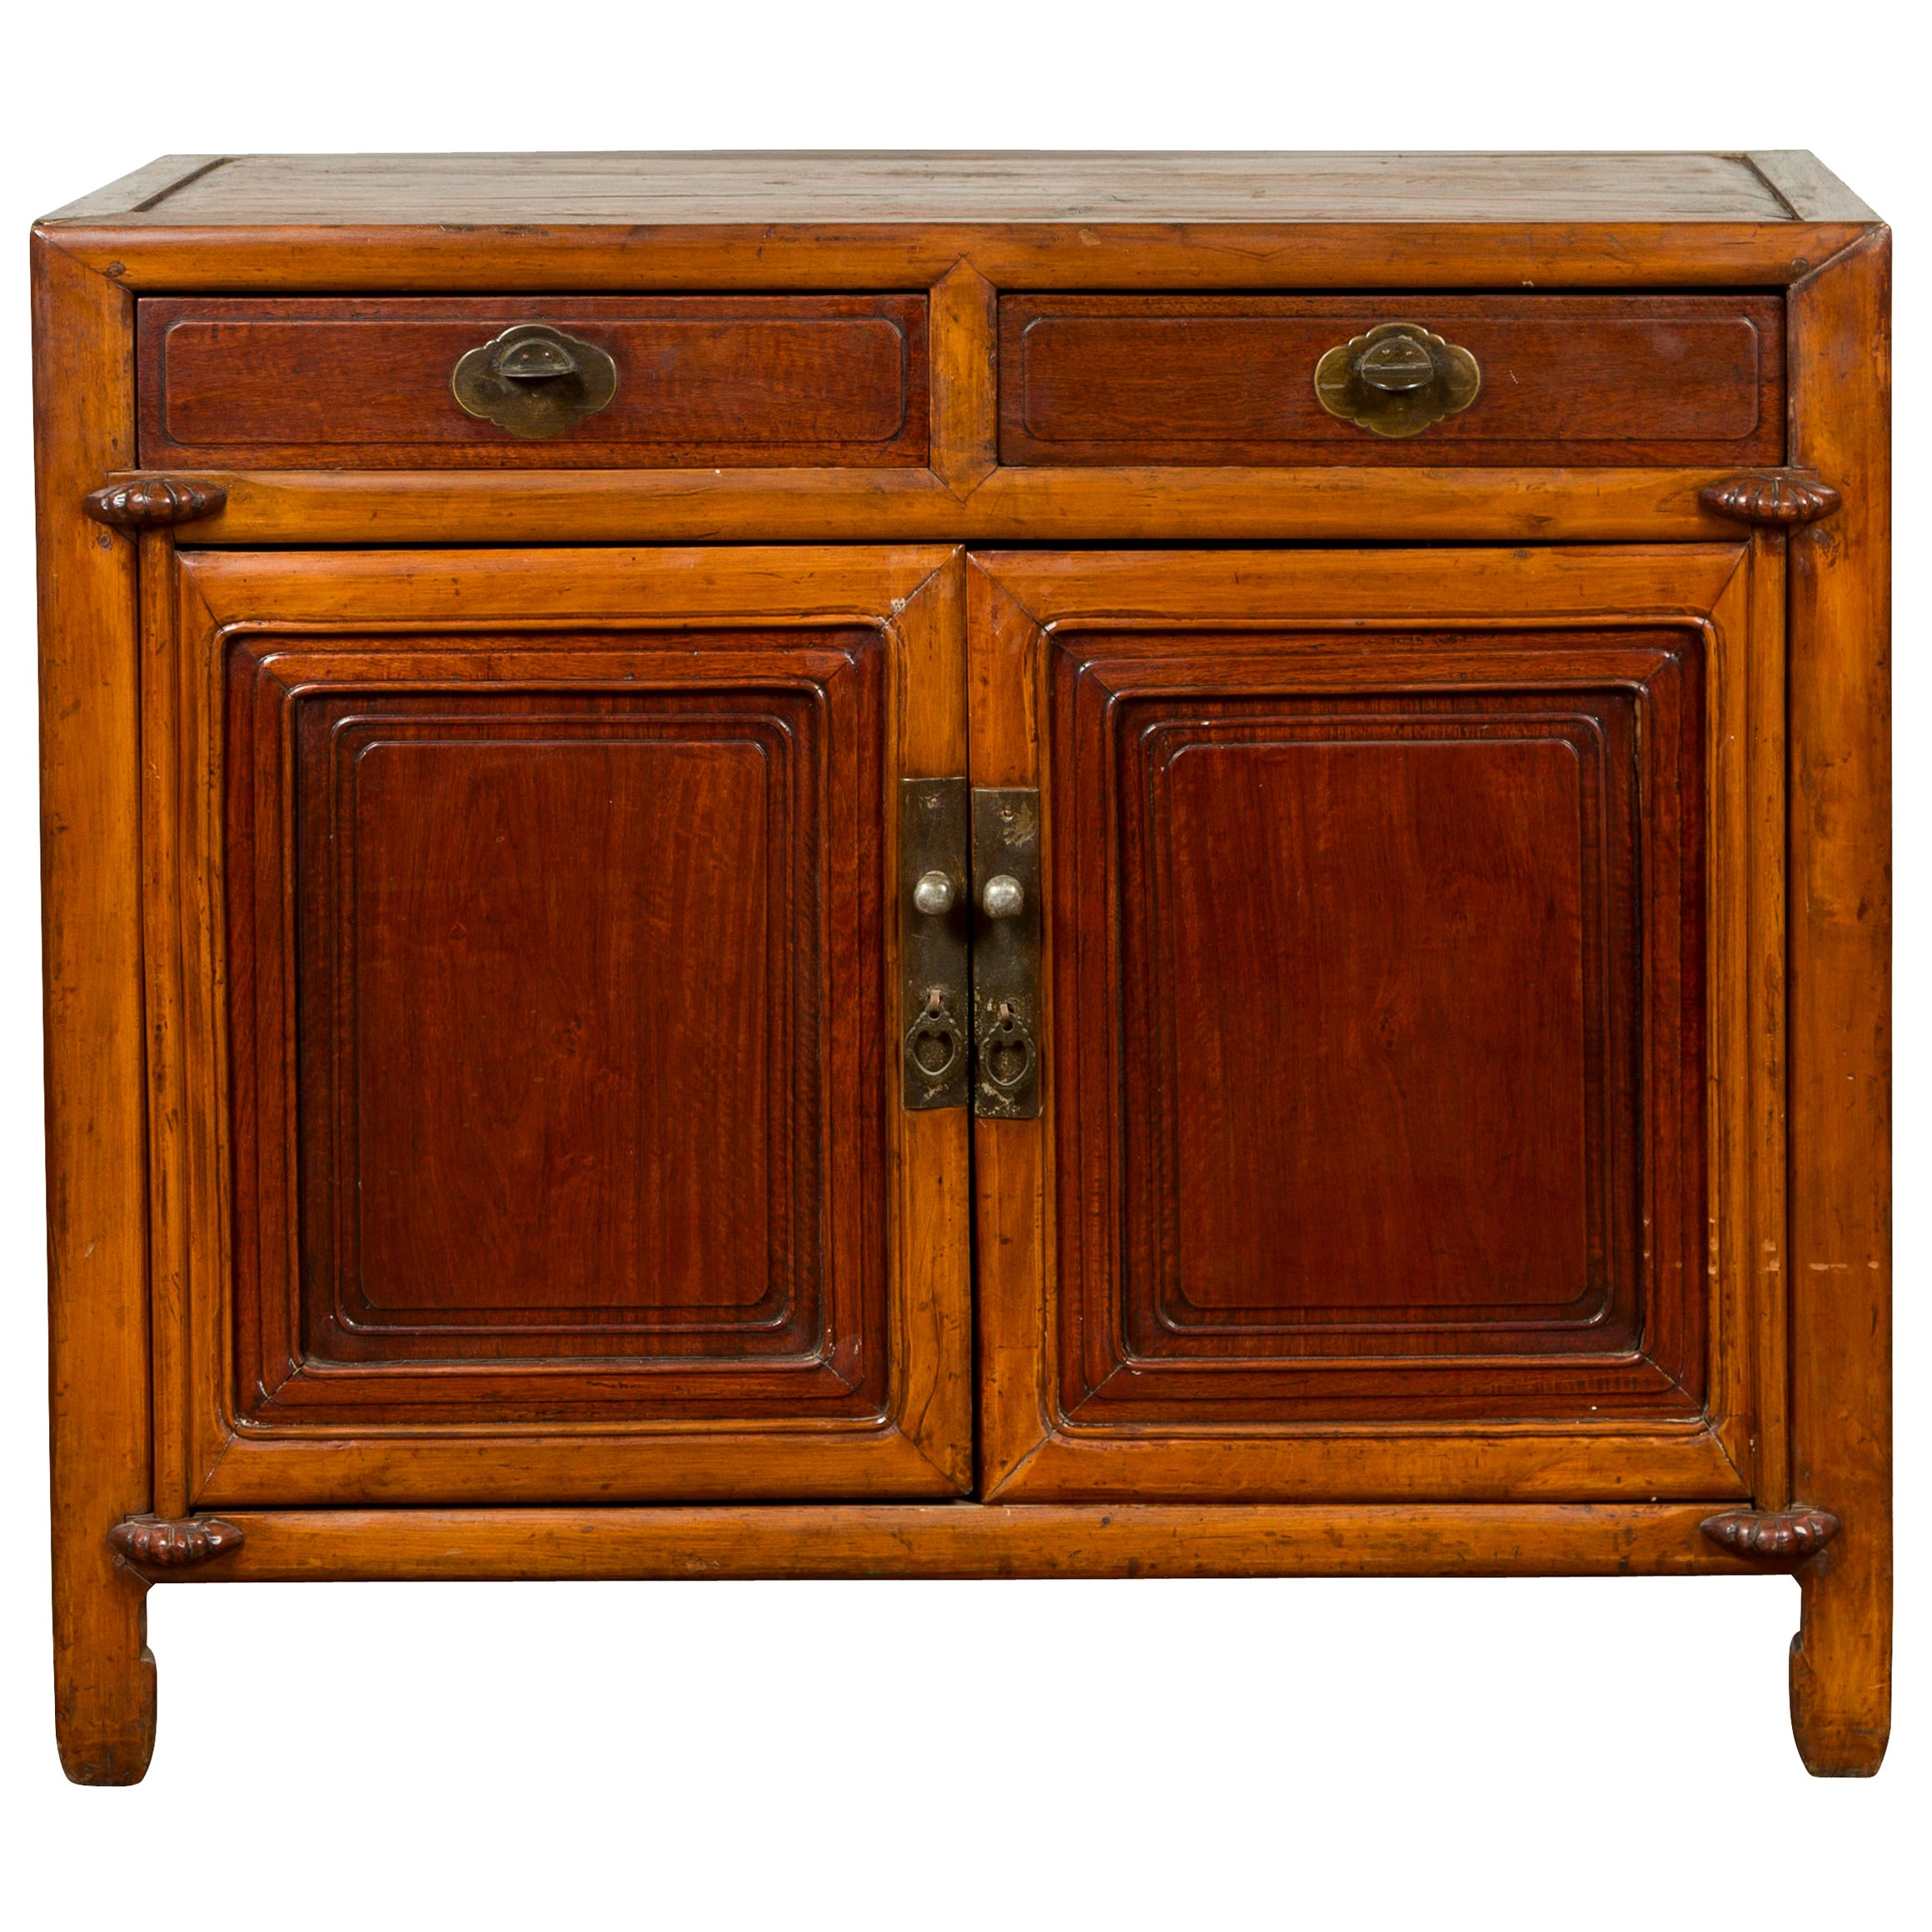 Vintage Chinese Two-Toned Cabinet with Drawers, Doors and Bronze Hardware